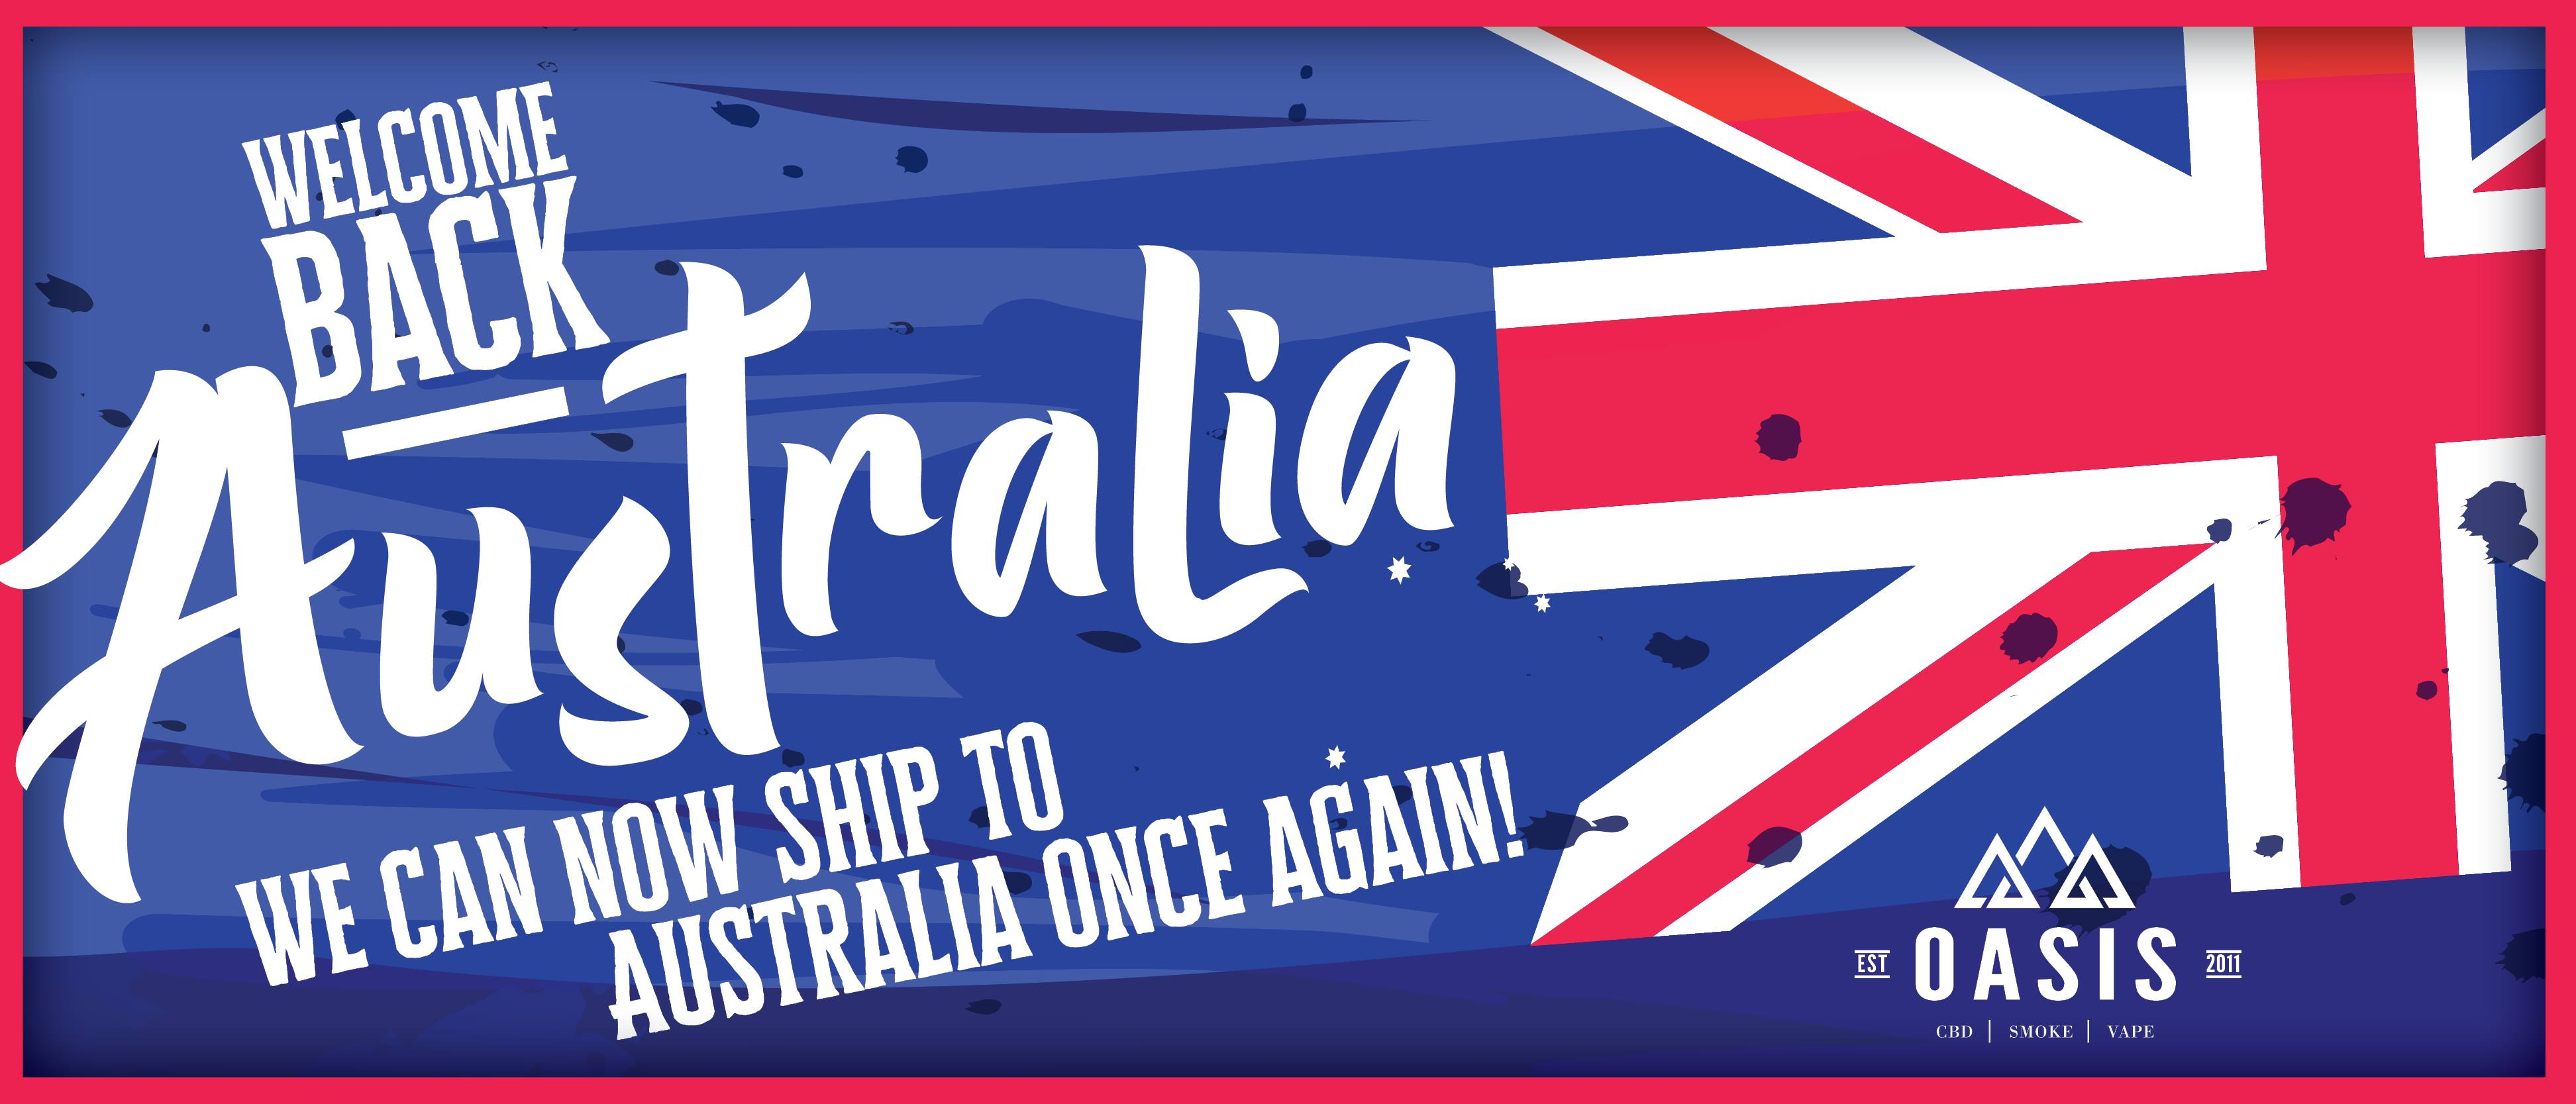 Welcome back Australia. We can now ship to Australia again!